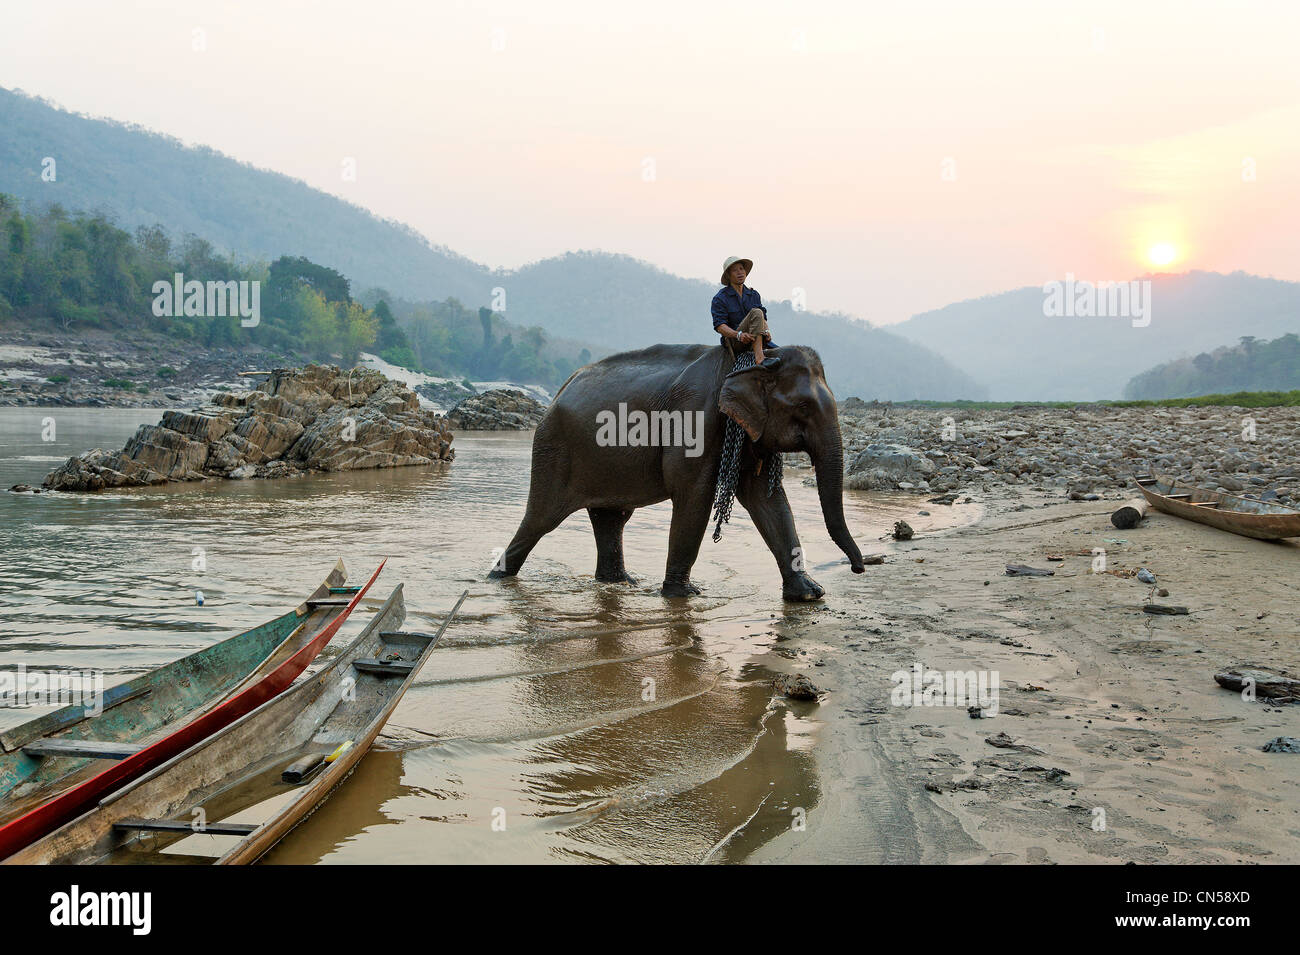 Laos, Sainyabuli Province, Mekong River, trek on elephant back, return of morning dip of elephants for the departure - Stock Image